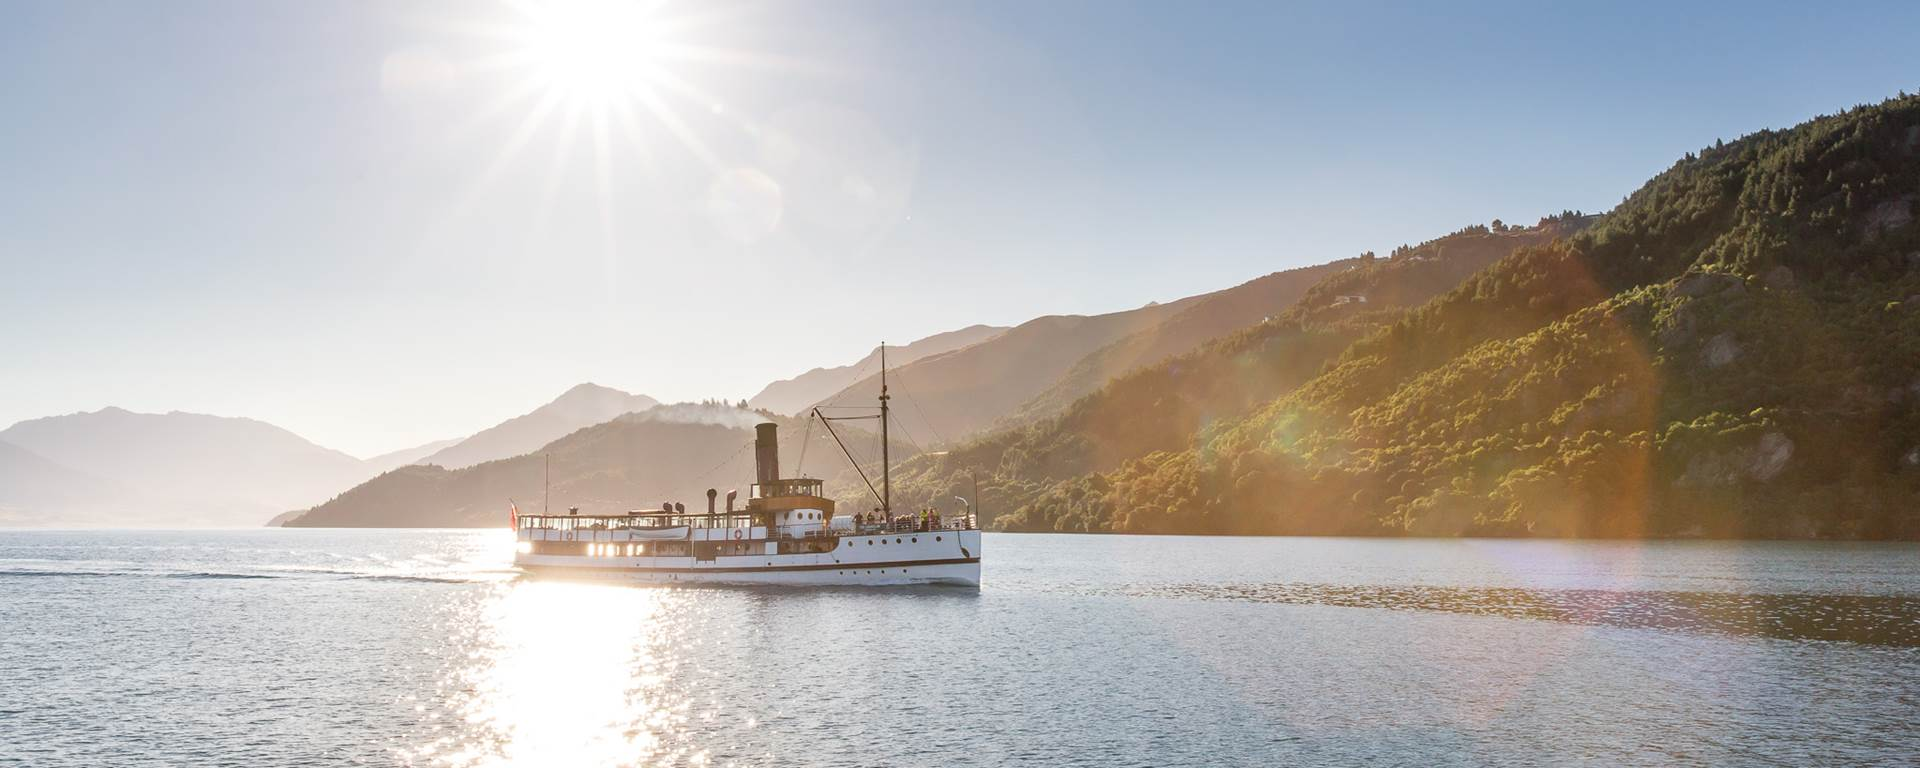 The Earnslaw cruises across Lake Wakatipu in the sunshine